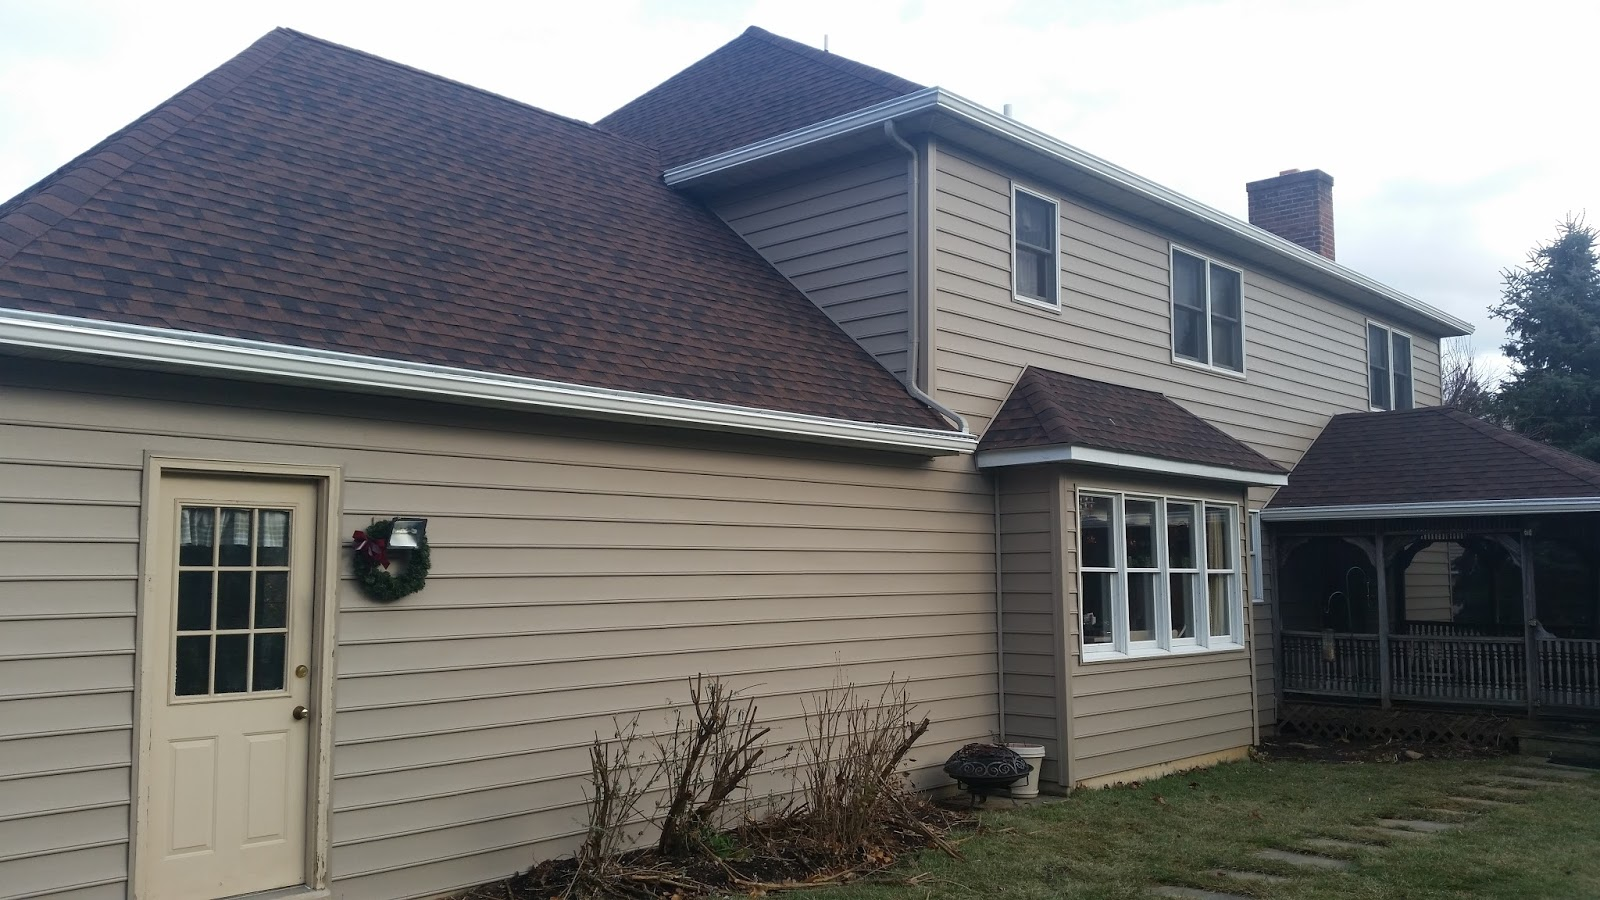 Jp construction services for Mid atlantic gutters and exteriors